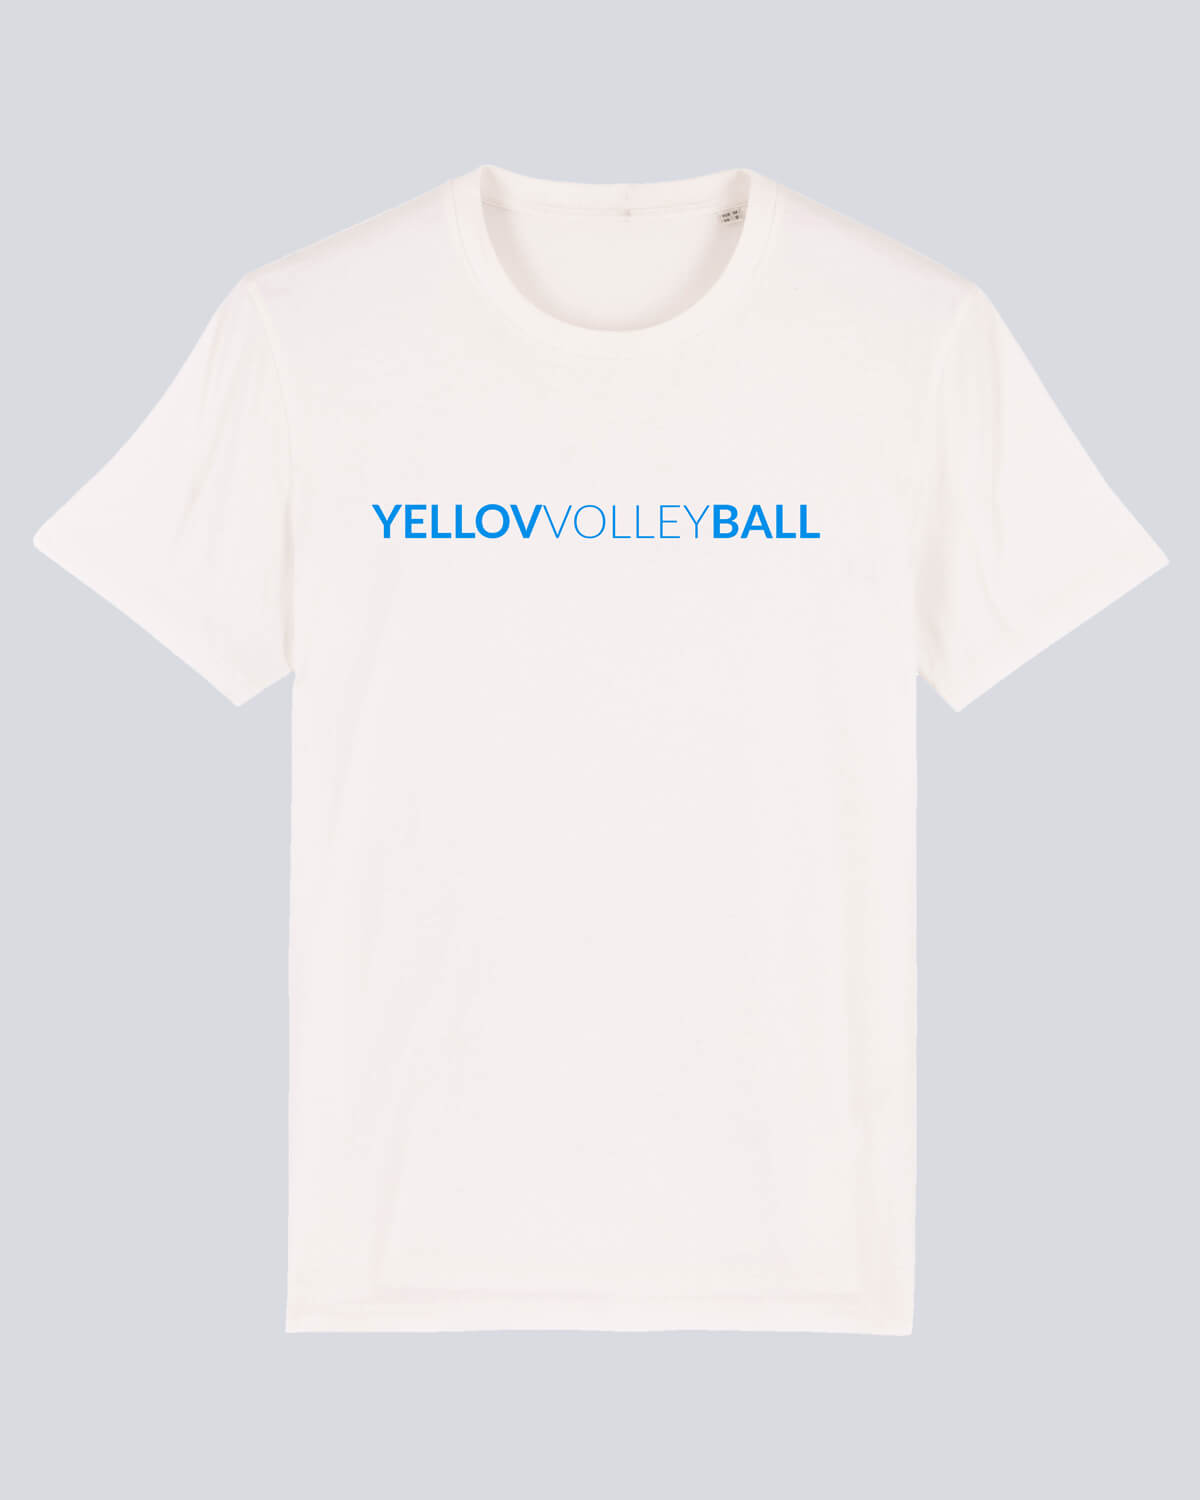 Yellov volleyball